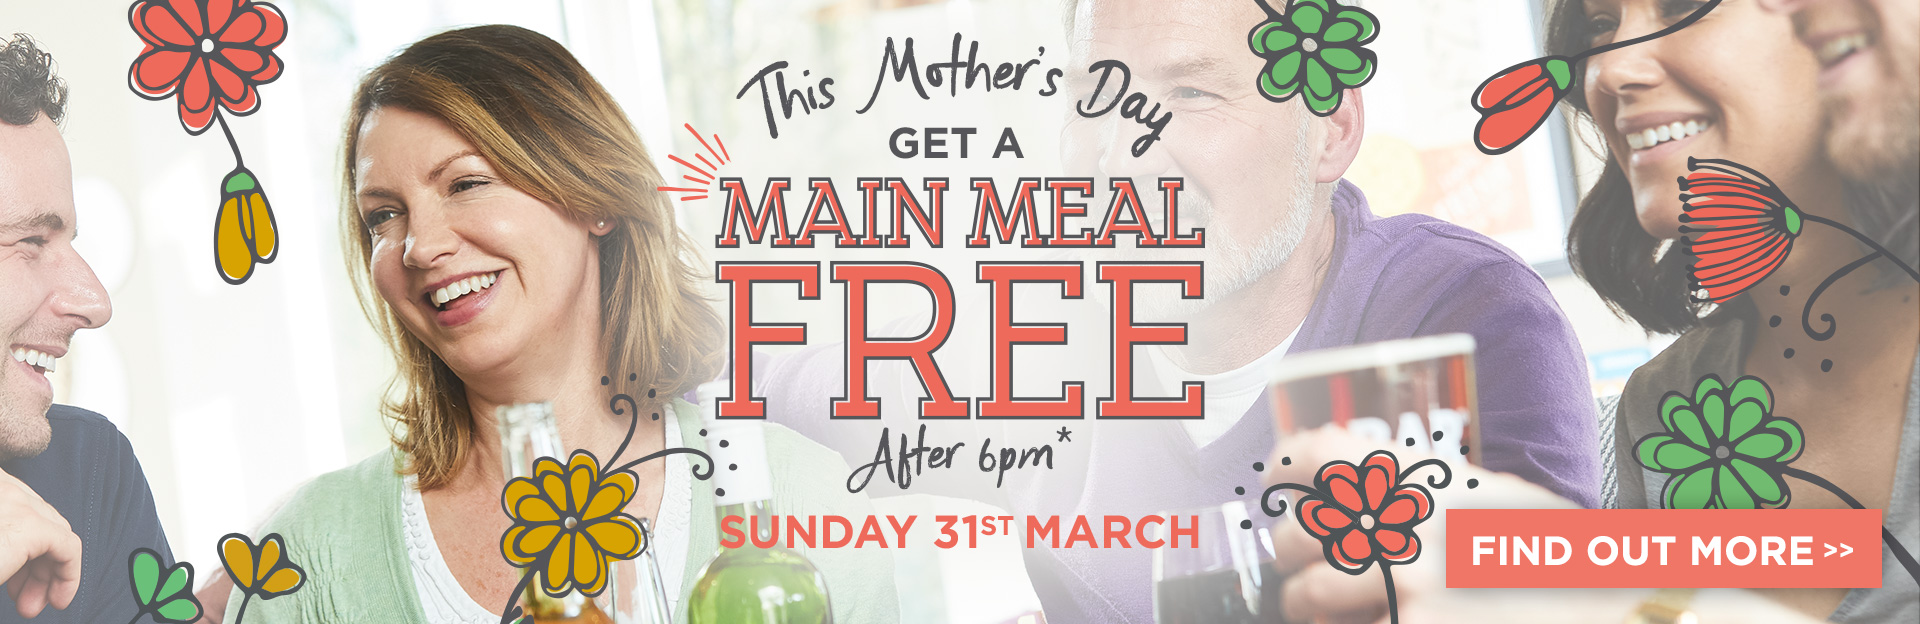 Mother's Day at The Ashbank